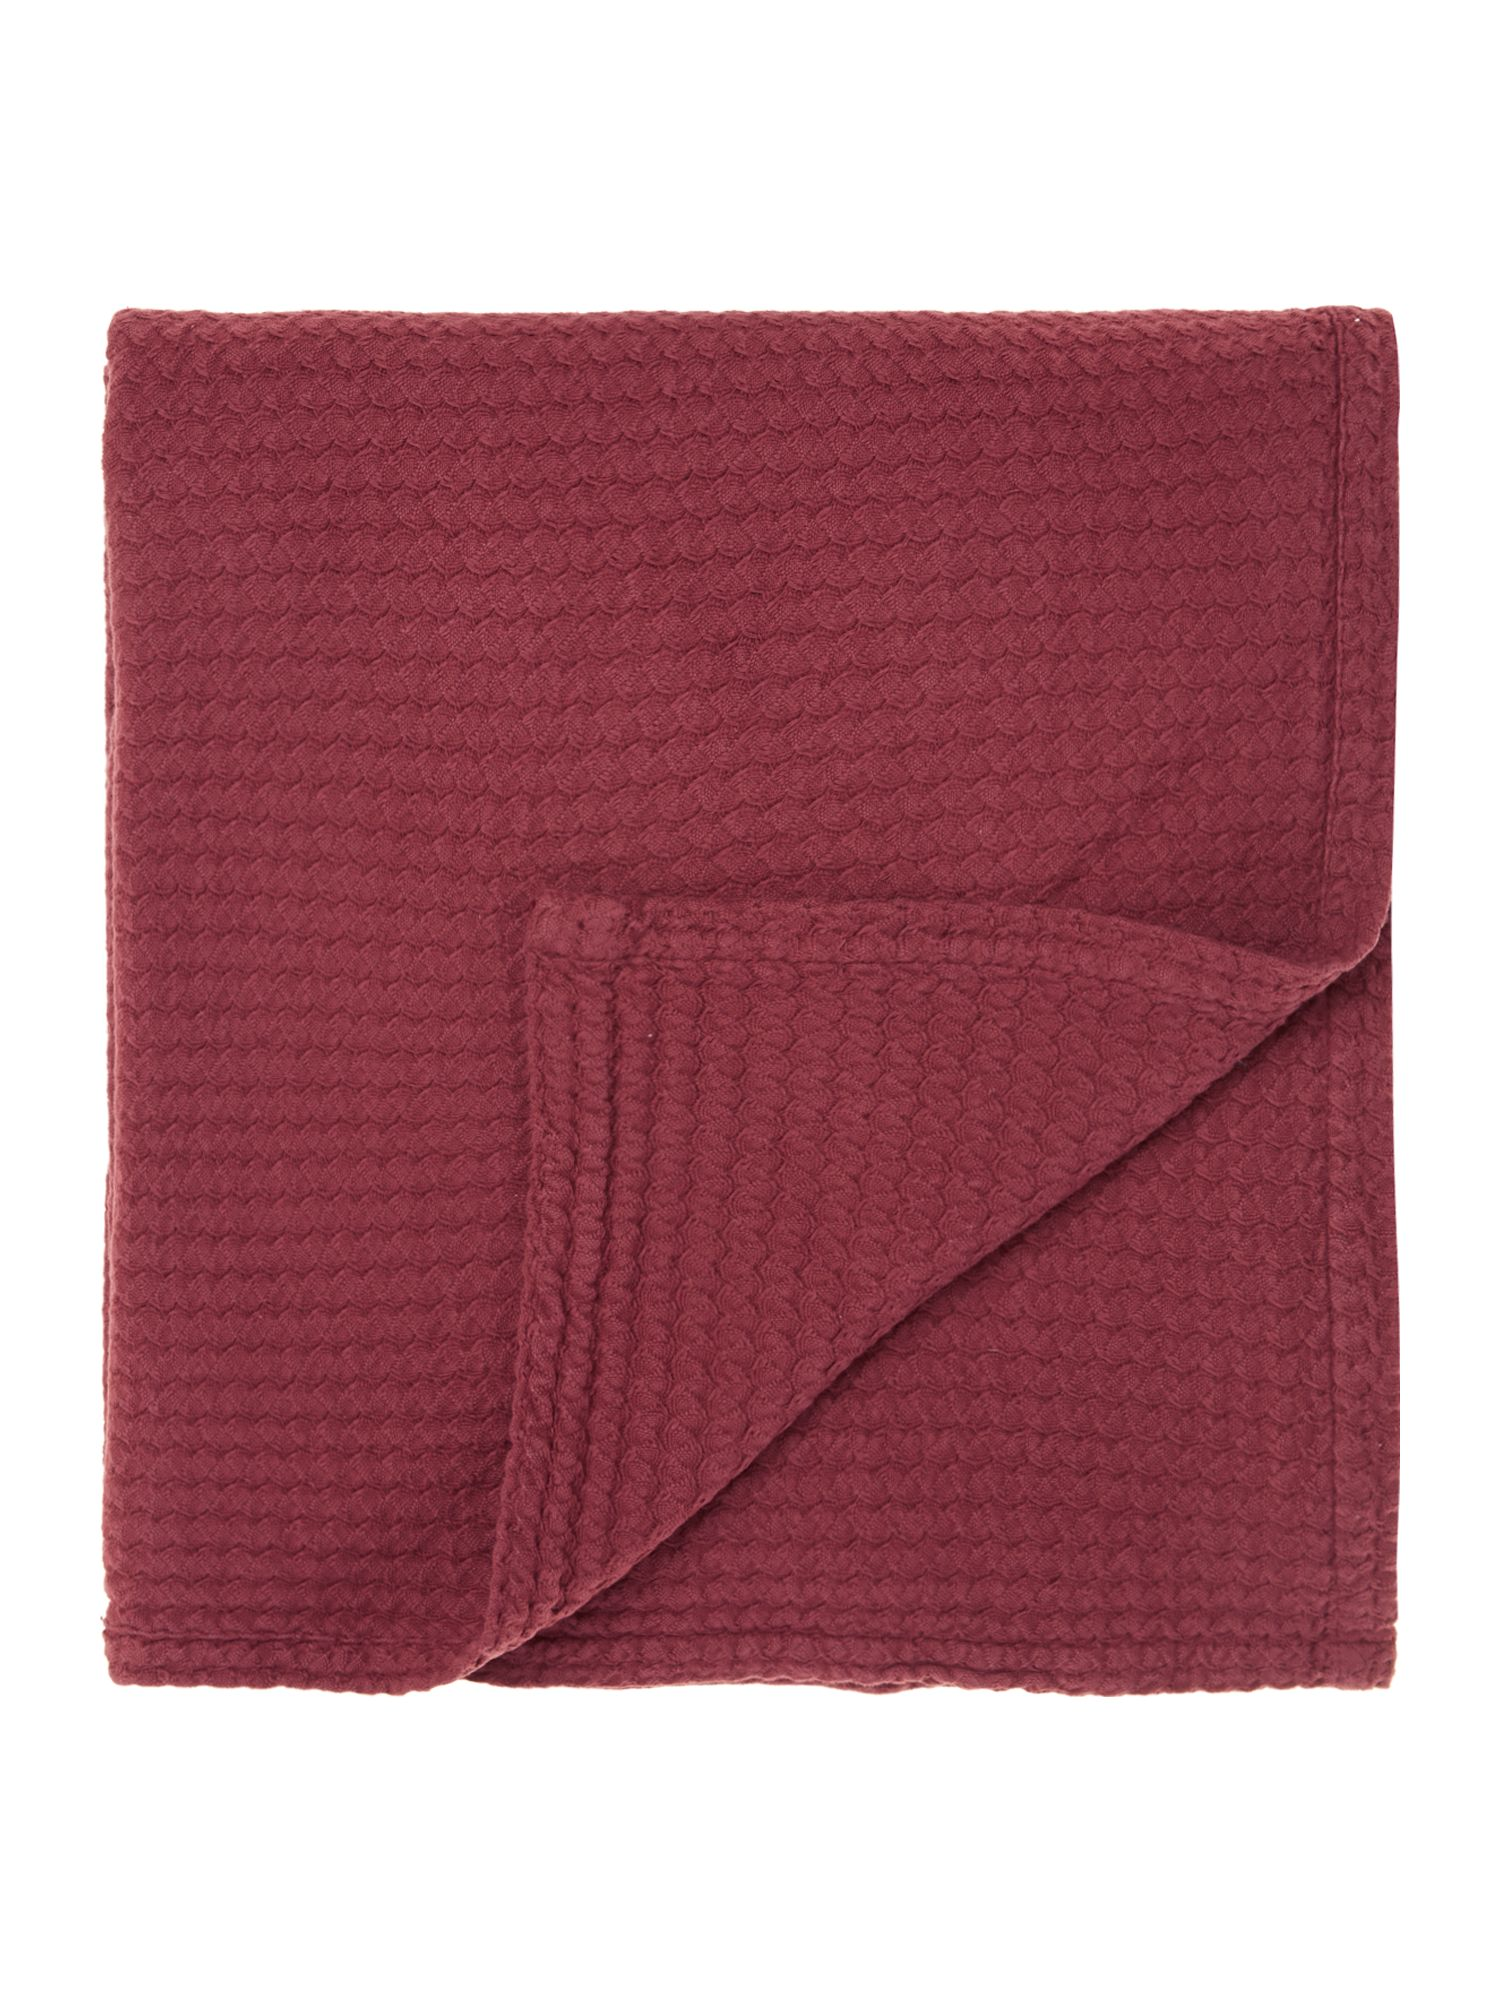 Bramble deep red bedspread